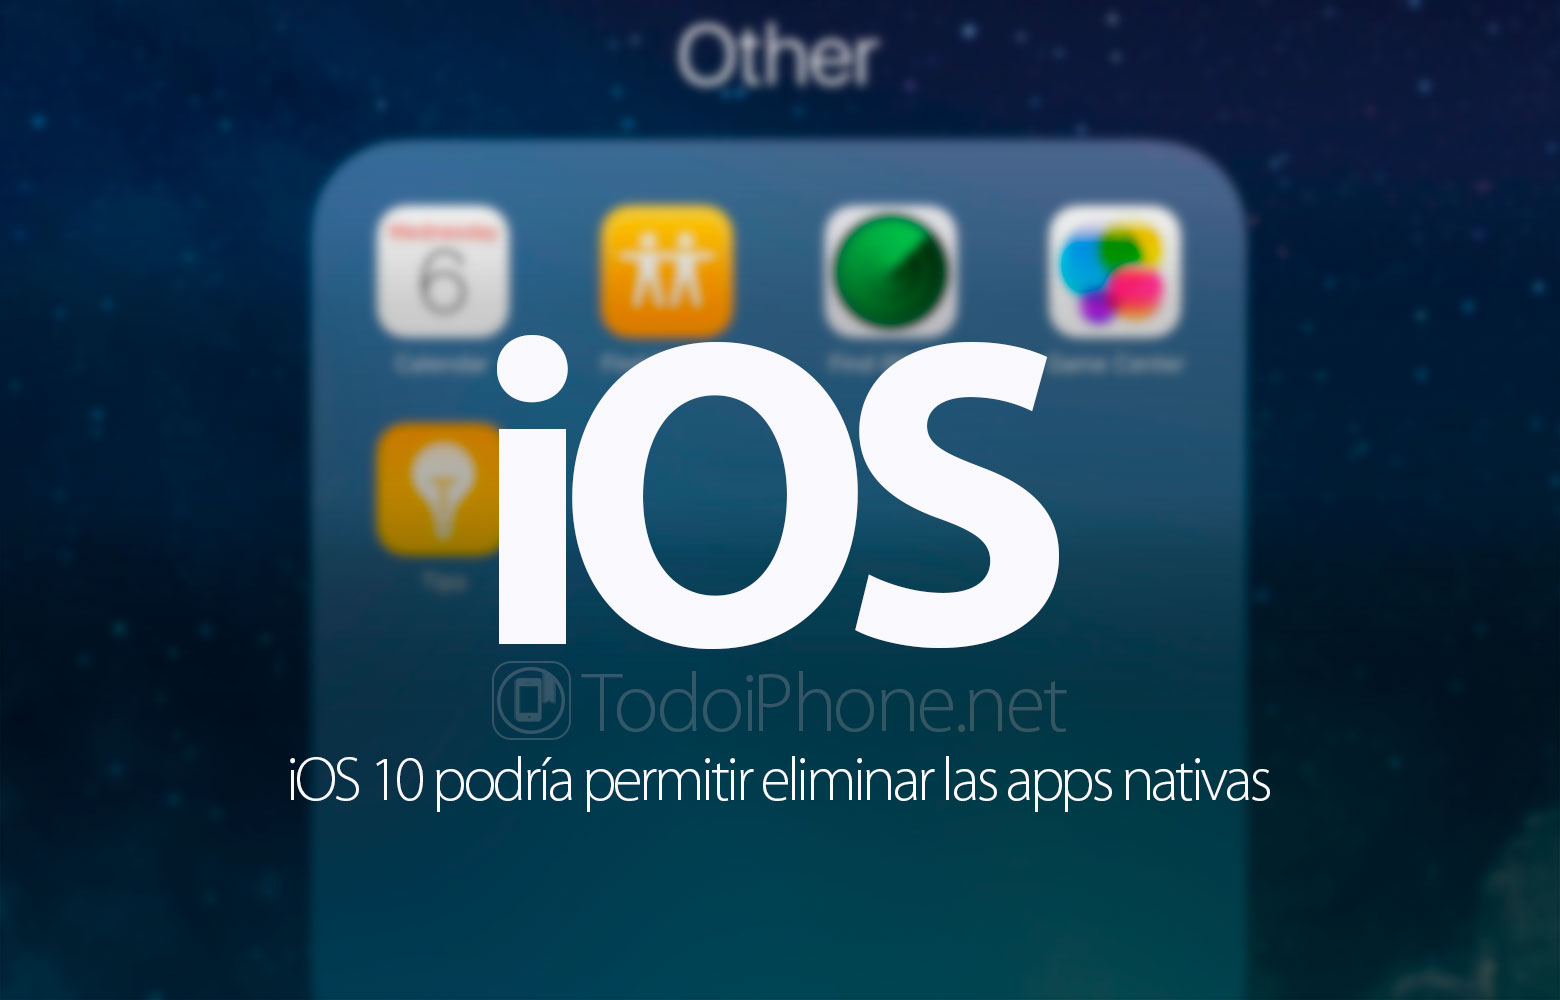 ios-10-podria-borrar-apps-nativas